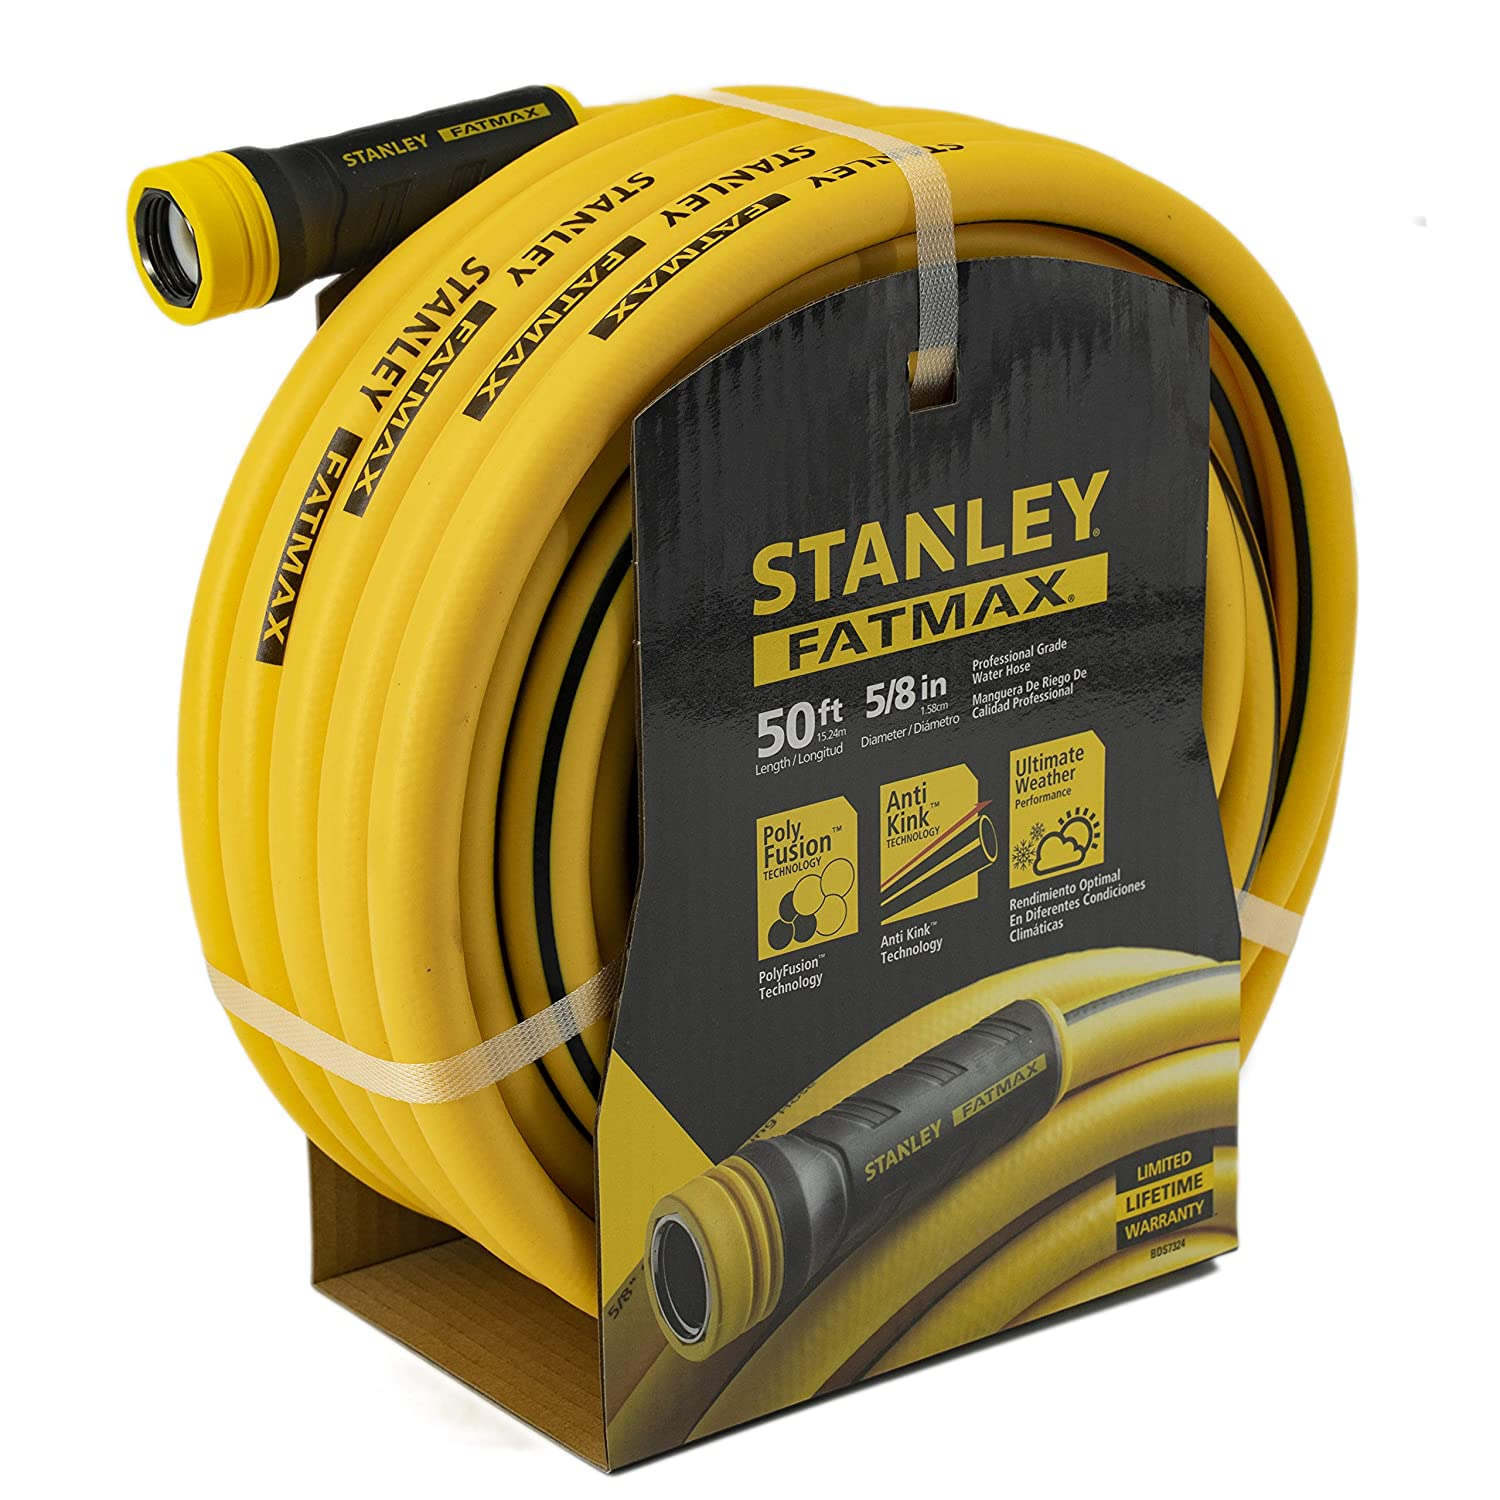 "Stanley Fatmax Professional Grade Water Hose, 50' x 5/8"", Yellow 500 PSI"